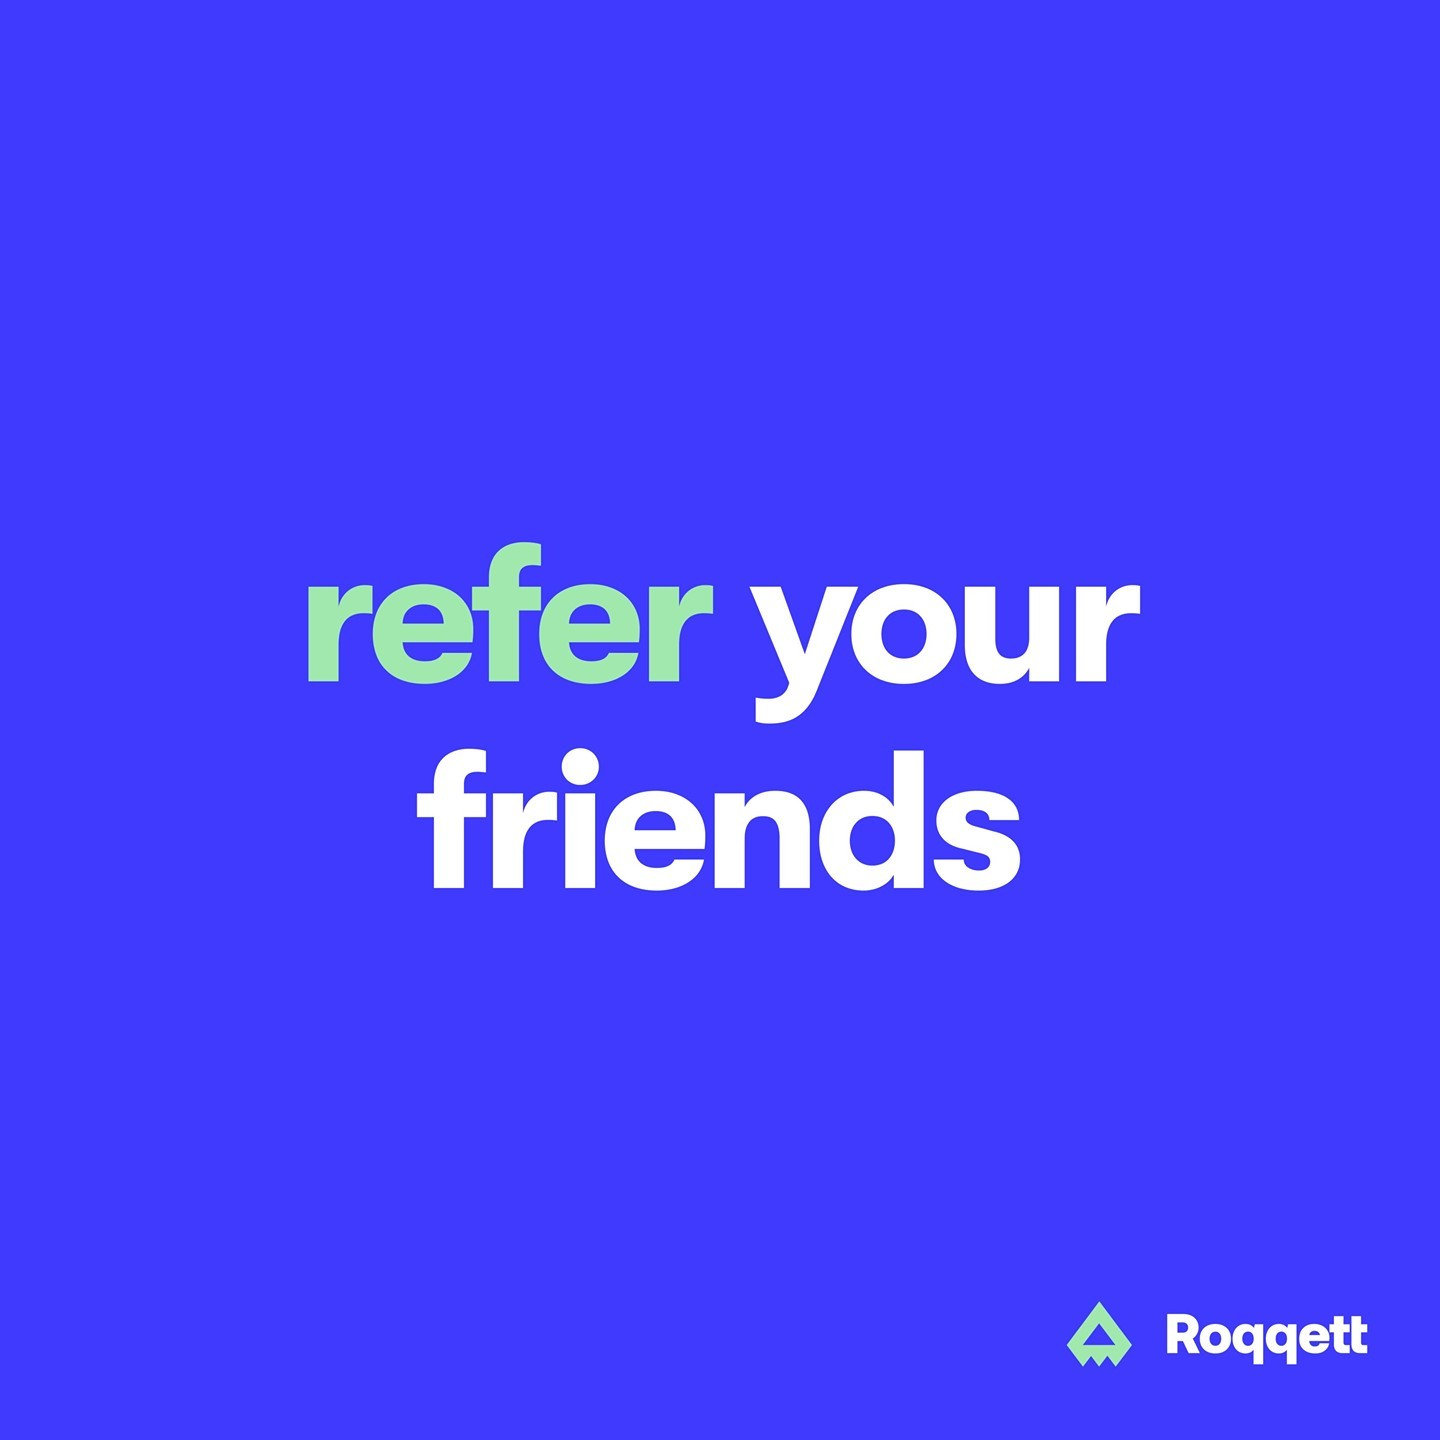 Time to take advantage of the group chat 👀. � � Supercharge your chance of winning cash! For every friend who enters our giveaway using your link, you get 10 more entries! � � Visit the link in our bio to enter the giveaway and get your referral link 🤑